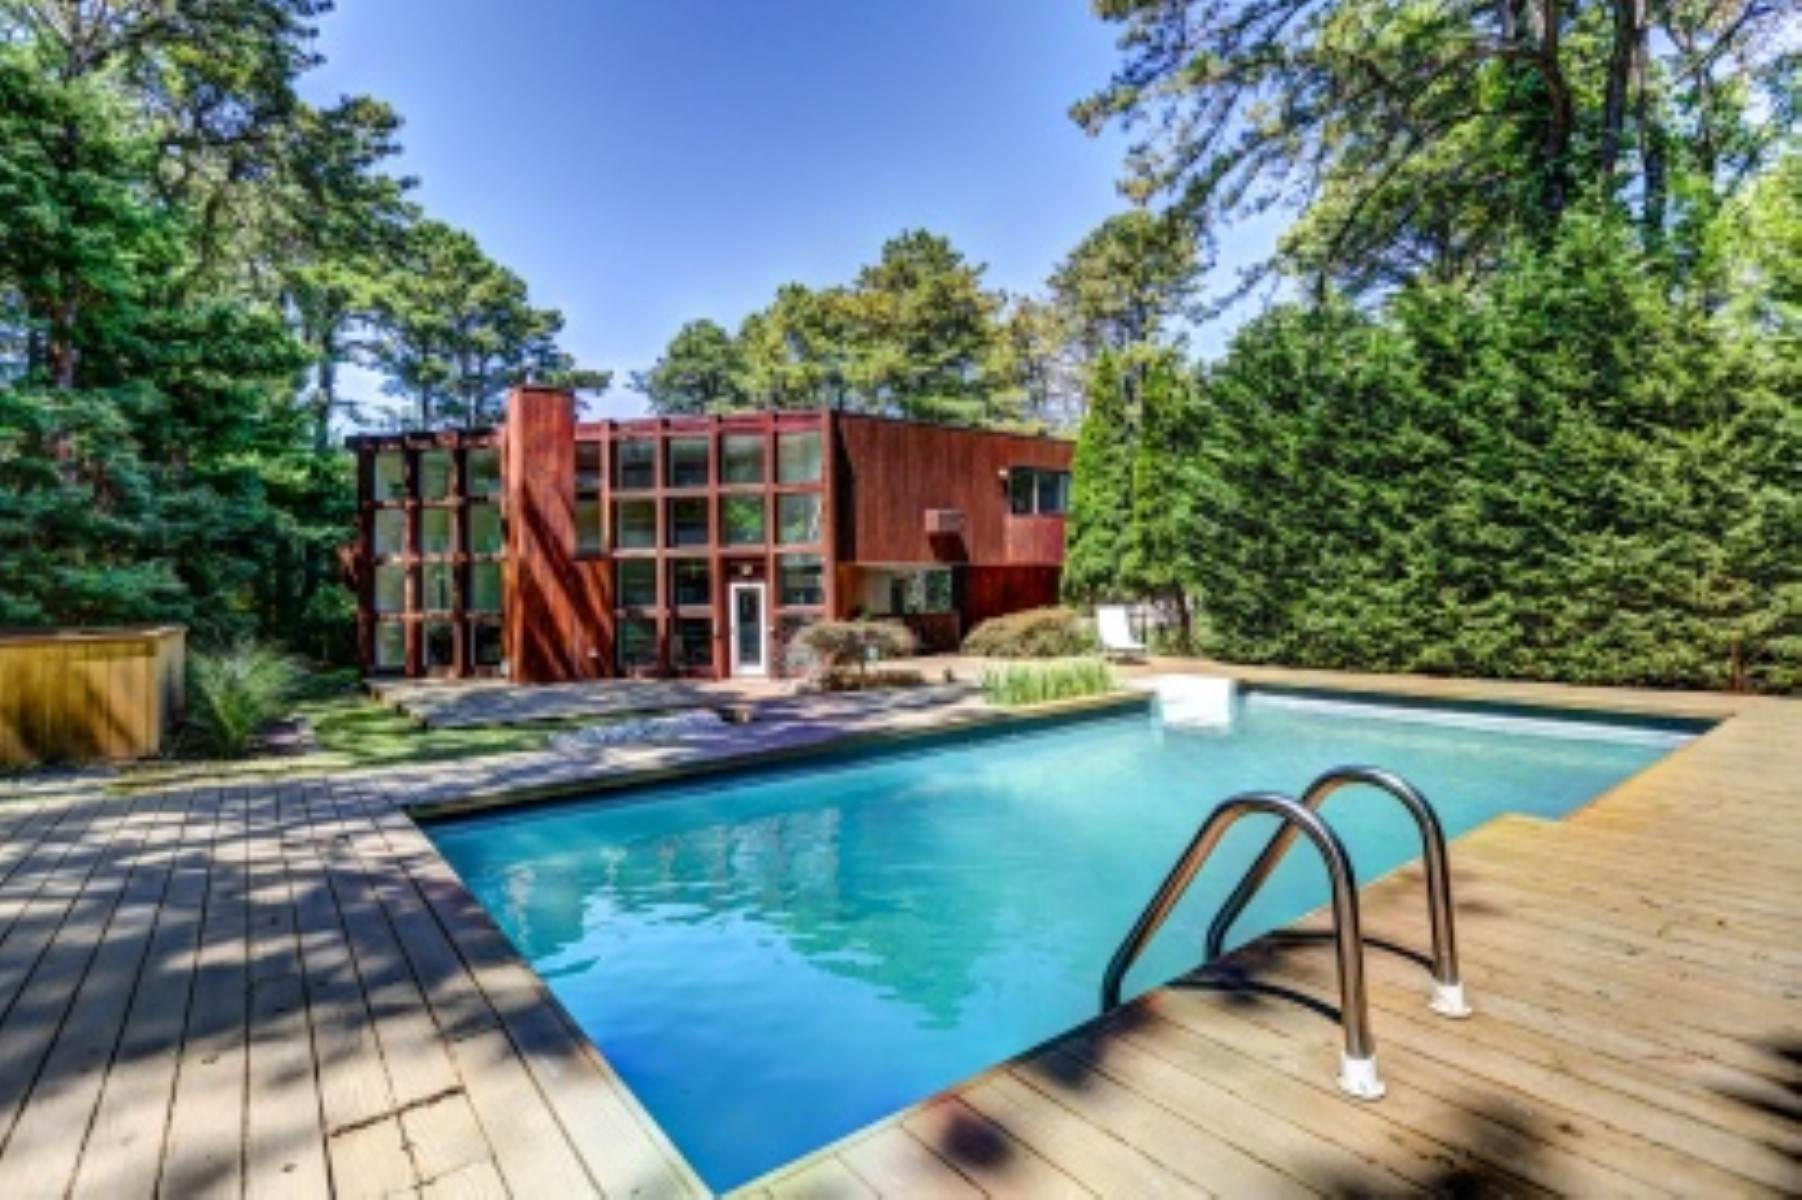 Single Family Home at 4 Bedroom Contemporary Home With Pool And Privacy Southampton, NY 11968